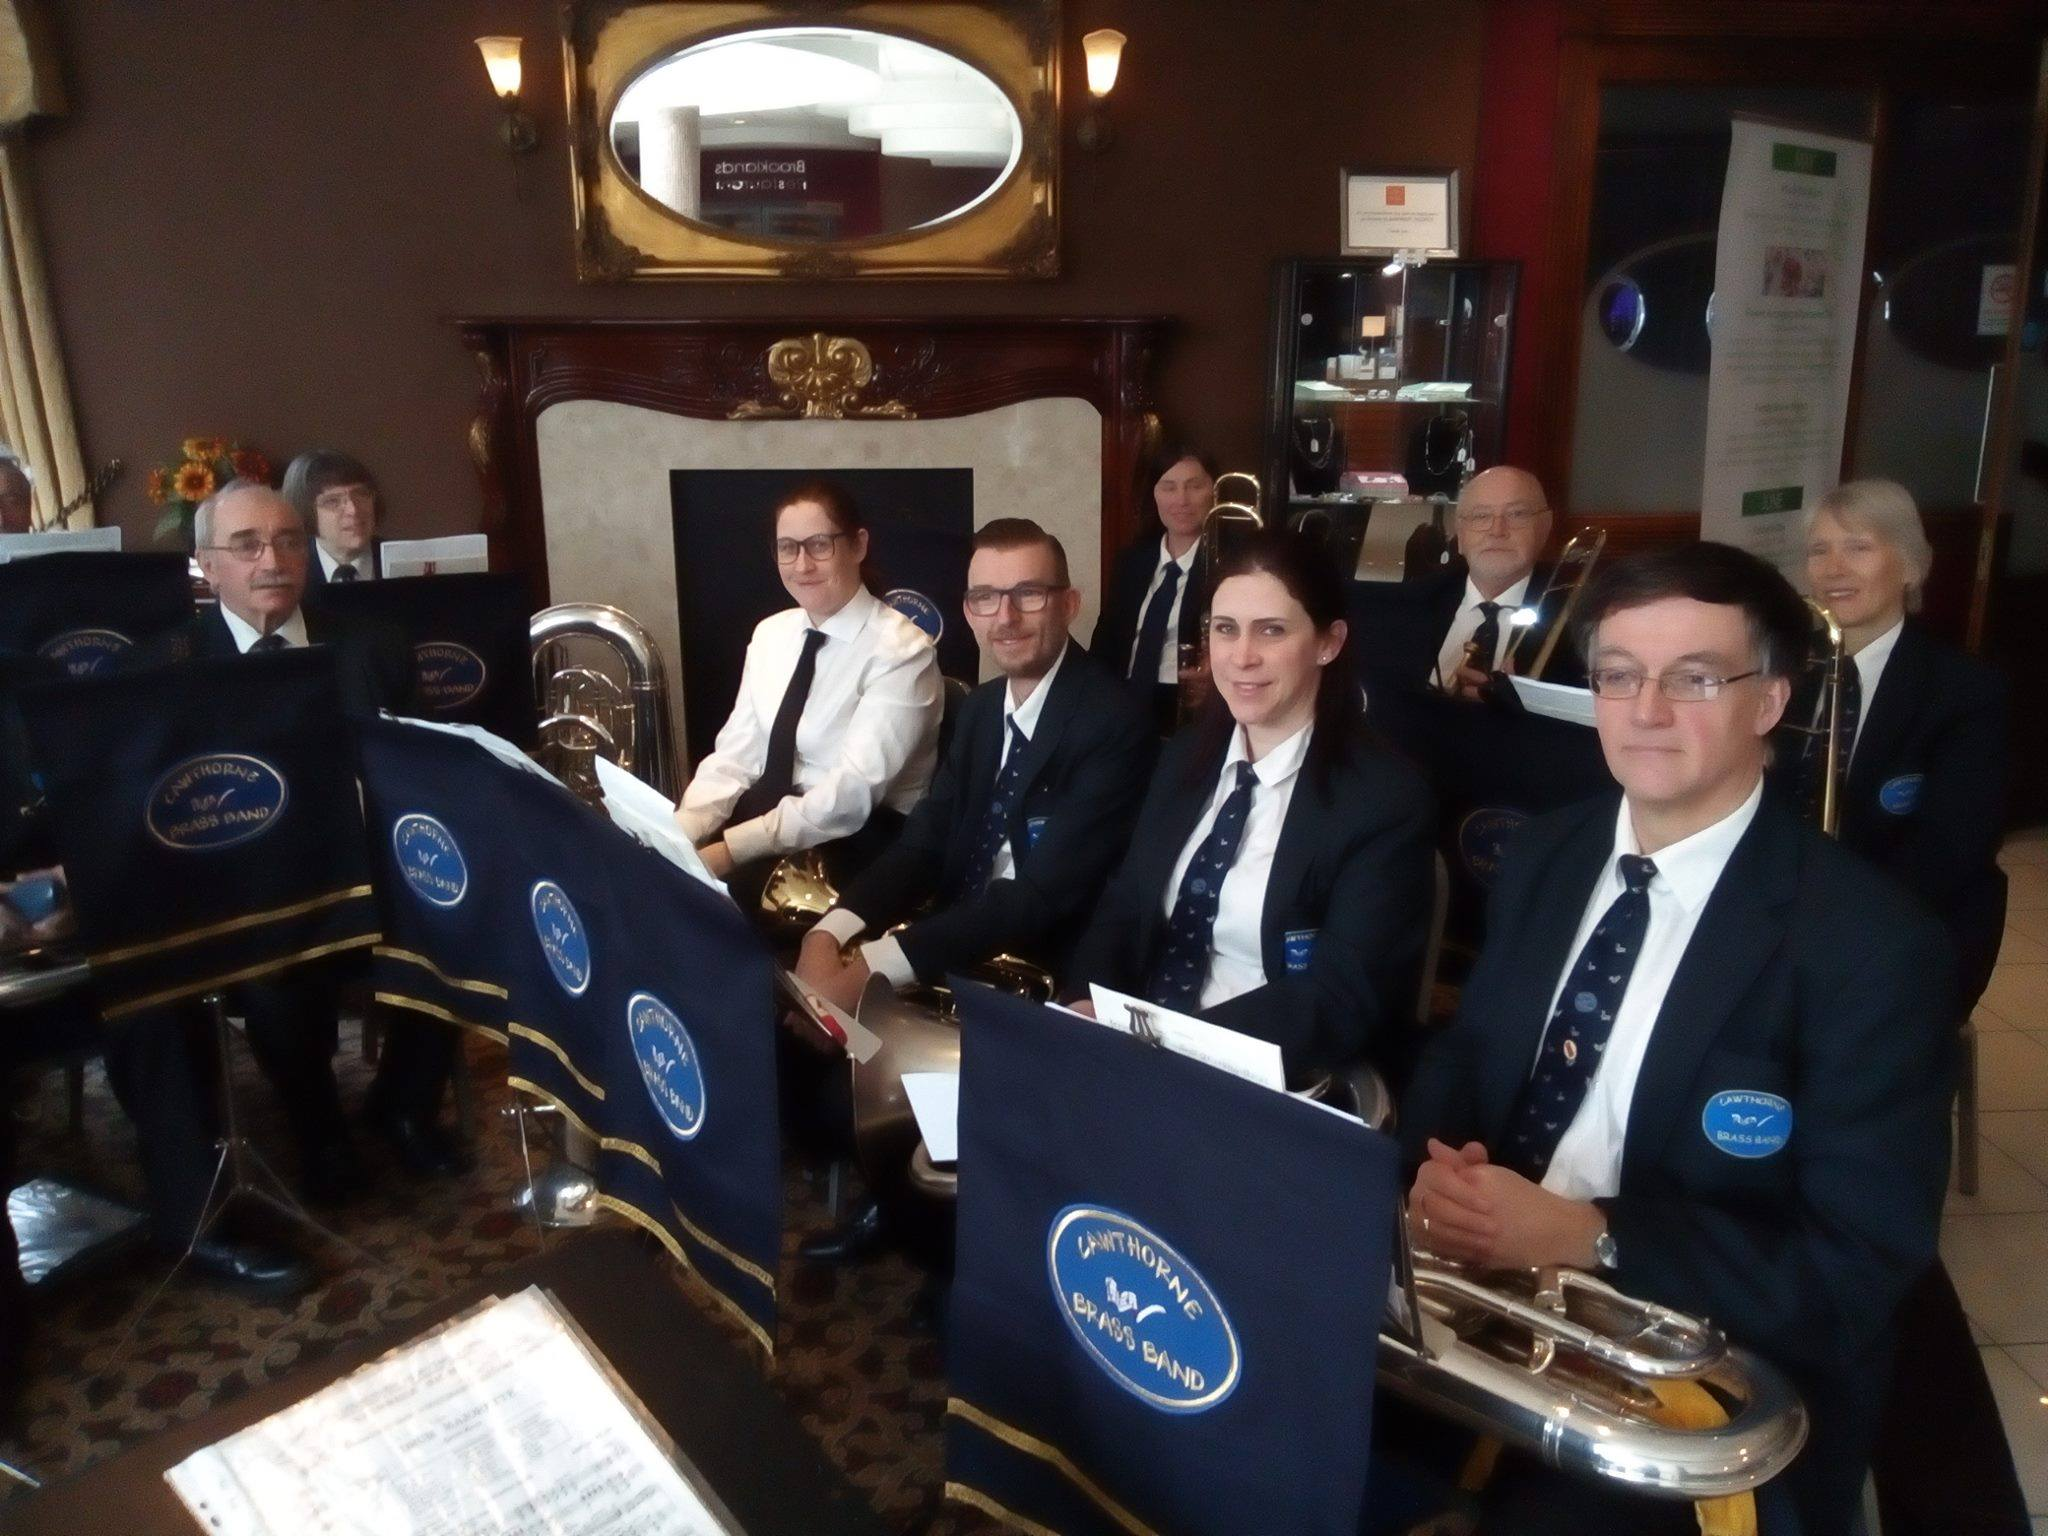 Band members wearing their uniforms are sat with their instruments on their laps